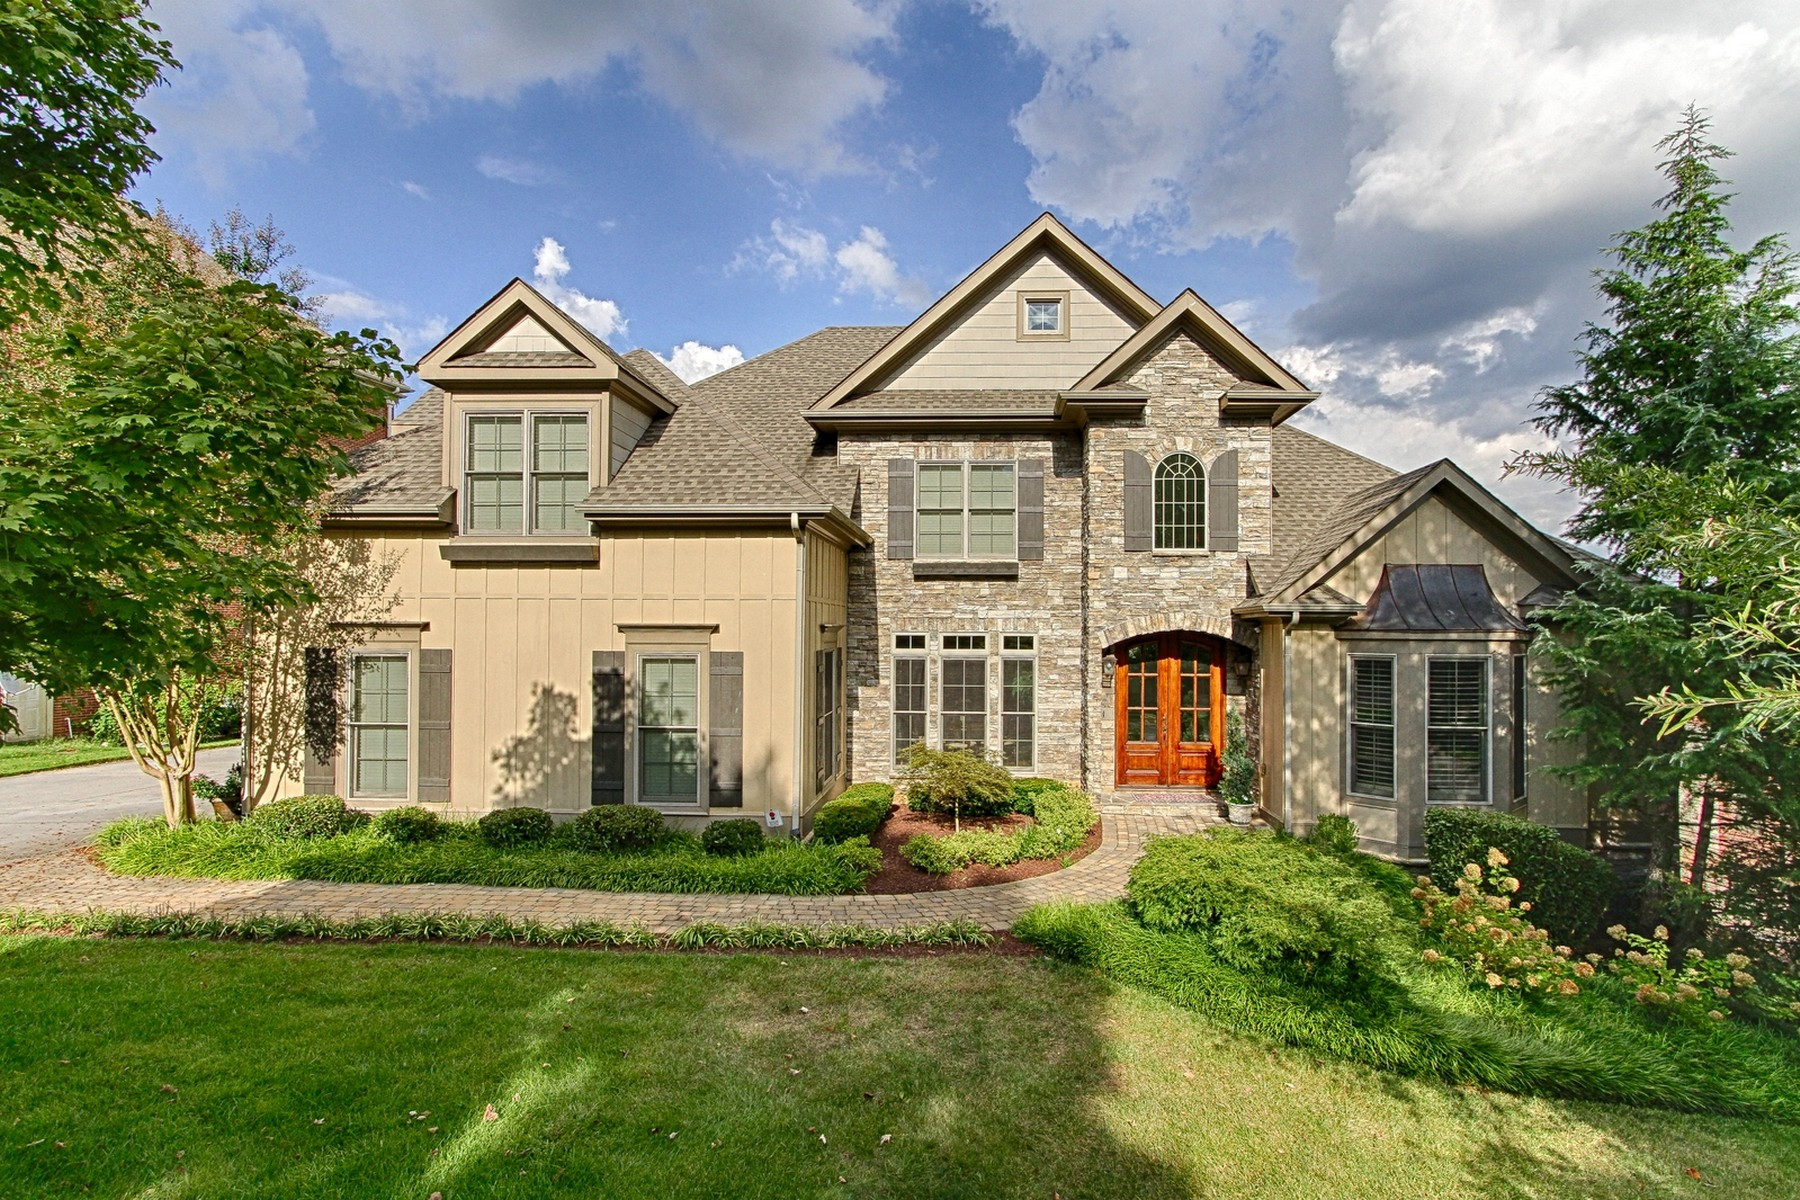 Single Family Home for Sale at Timeless Design...Majestic Views 1015 Gettysvue Drive Knoxville, Tennessee 37922 United States